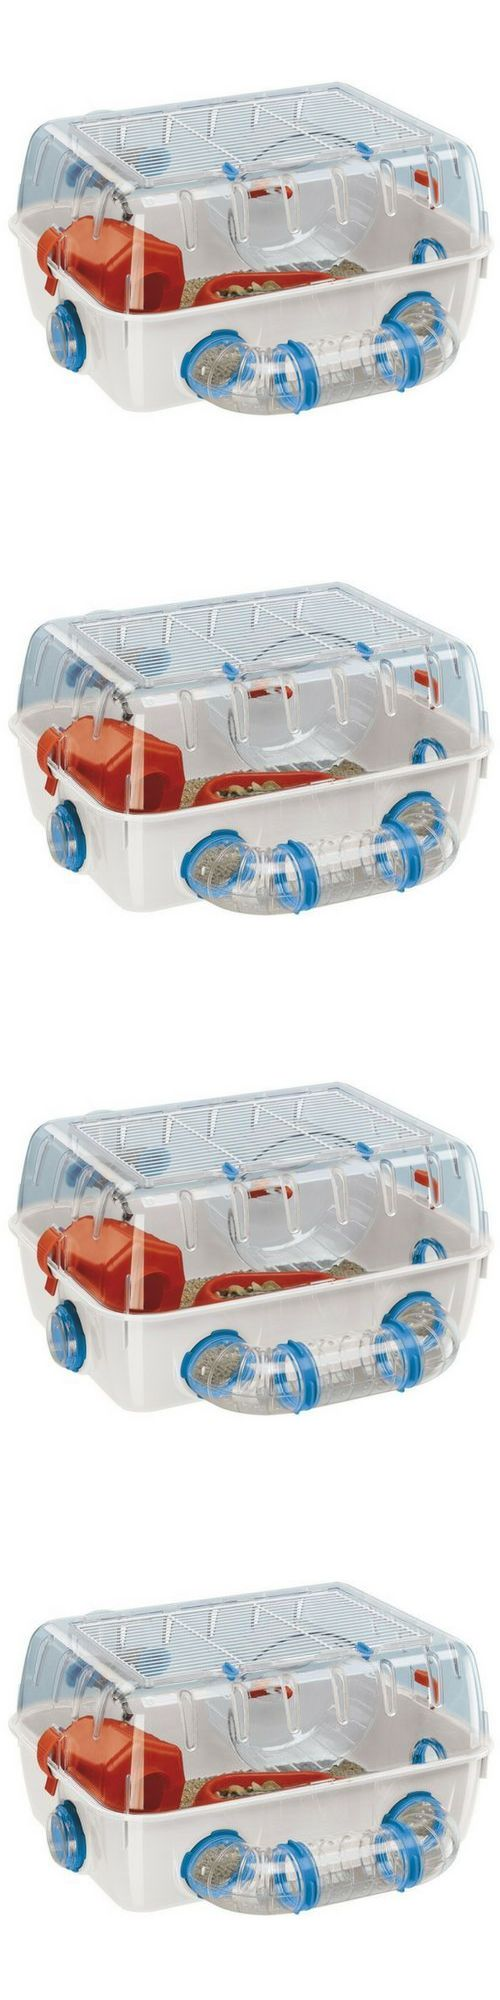 Other Small Animal Supplies 11289: Hamster Cage Home Toy Bridge Swing Pet Small Animal Rodents Rat Mouse BUY IT NOW ONLY: $61.75